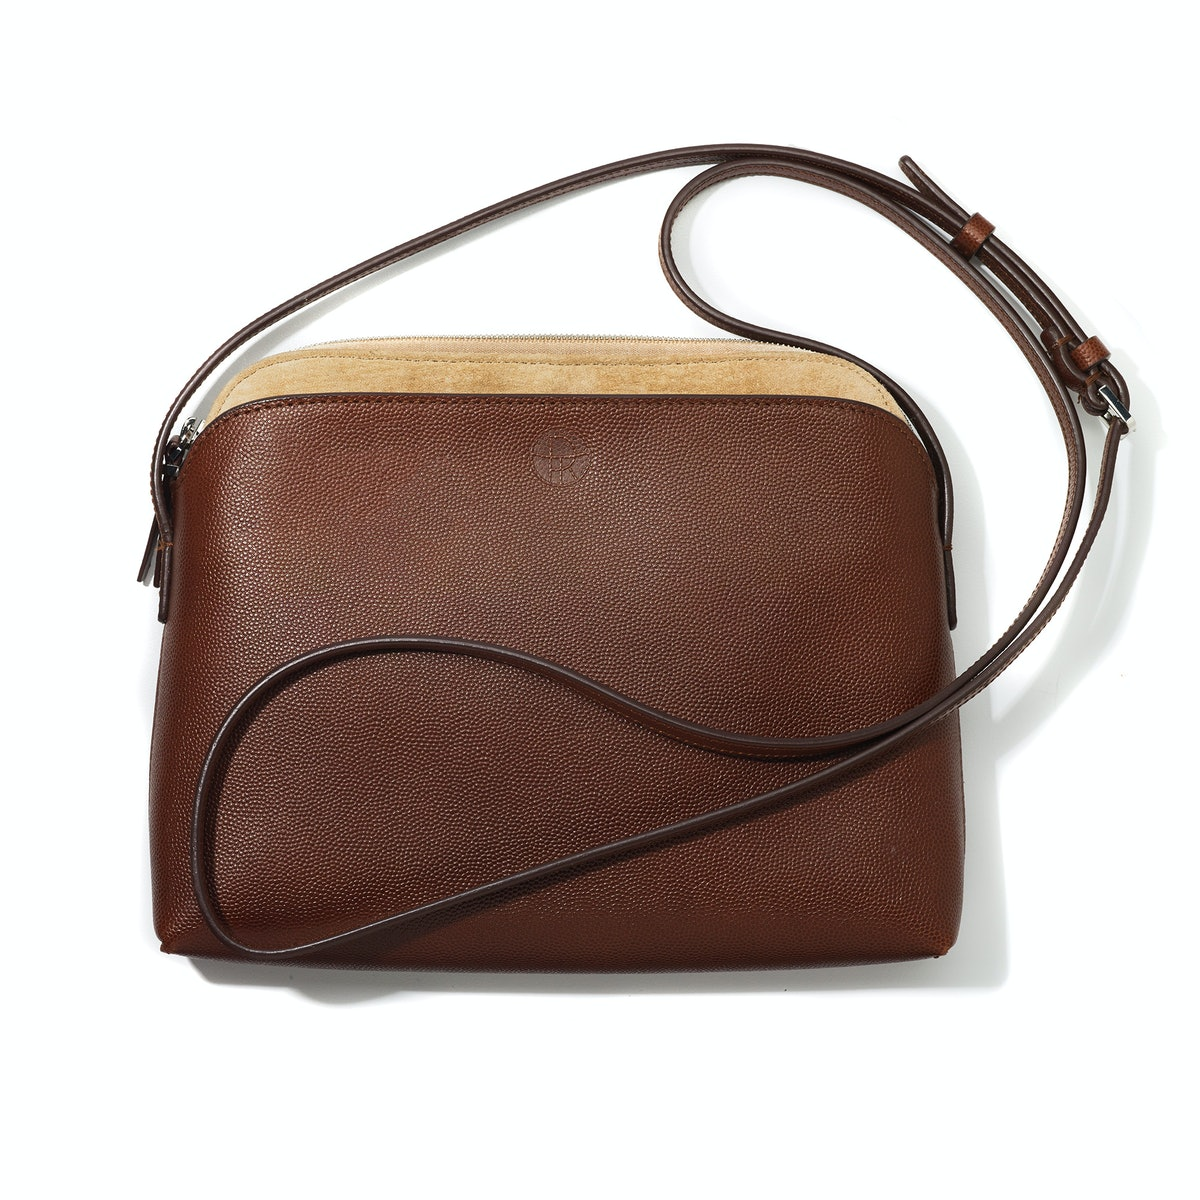 The Row pouch